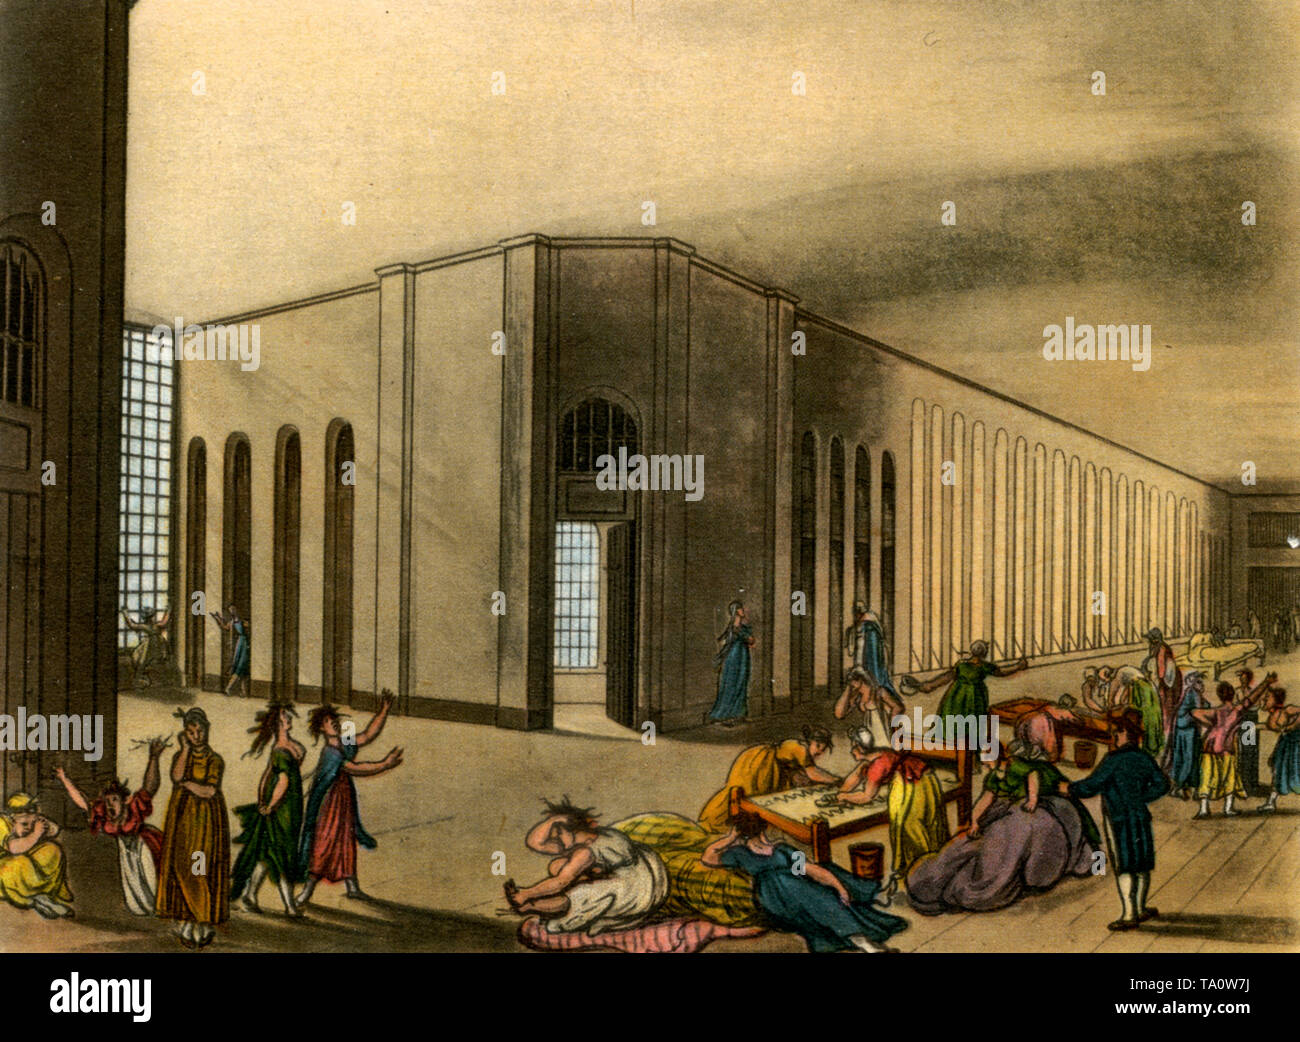 St Luke's Hospital, c1808-1810. A print from 'The Microcosm of London', by William Henry Pyne (1770-1843). Artists: Thomas Rowlandson (1756-1827) and Auguste Charles Pugin (1762–1832). St Luke's Hospital for Lunatics was founded in London in 1751 for the treatment of incurable pauper lunatics and was designed by George Dance the Younger. - Stock Image